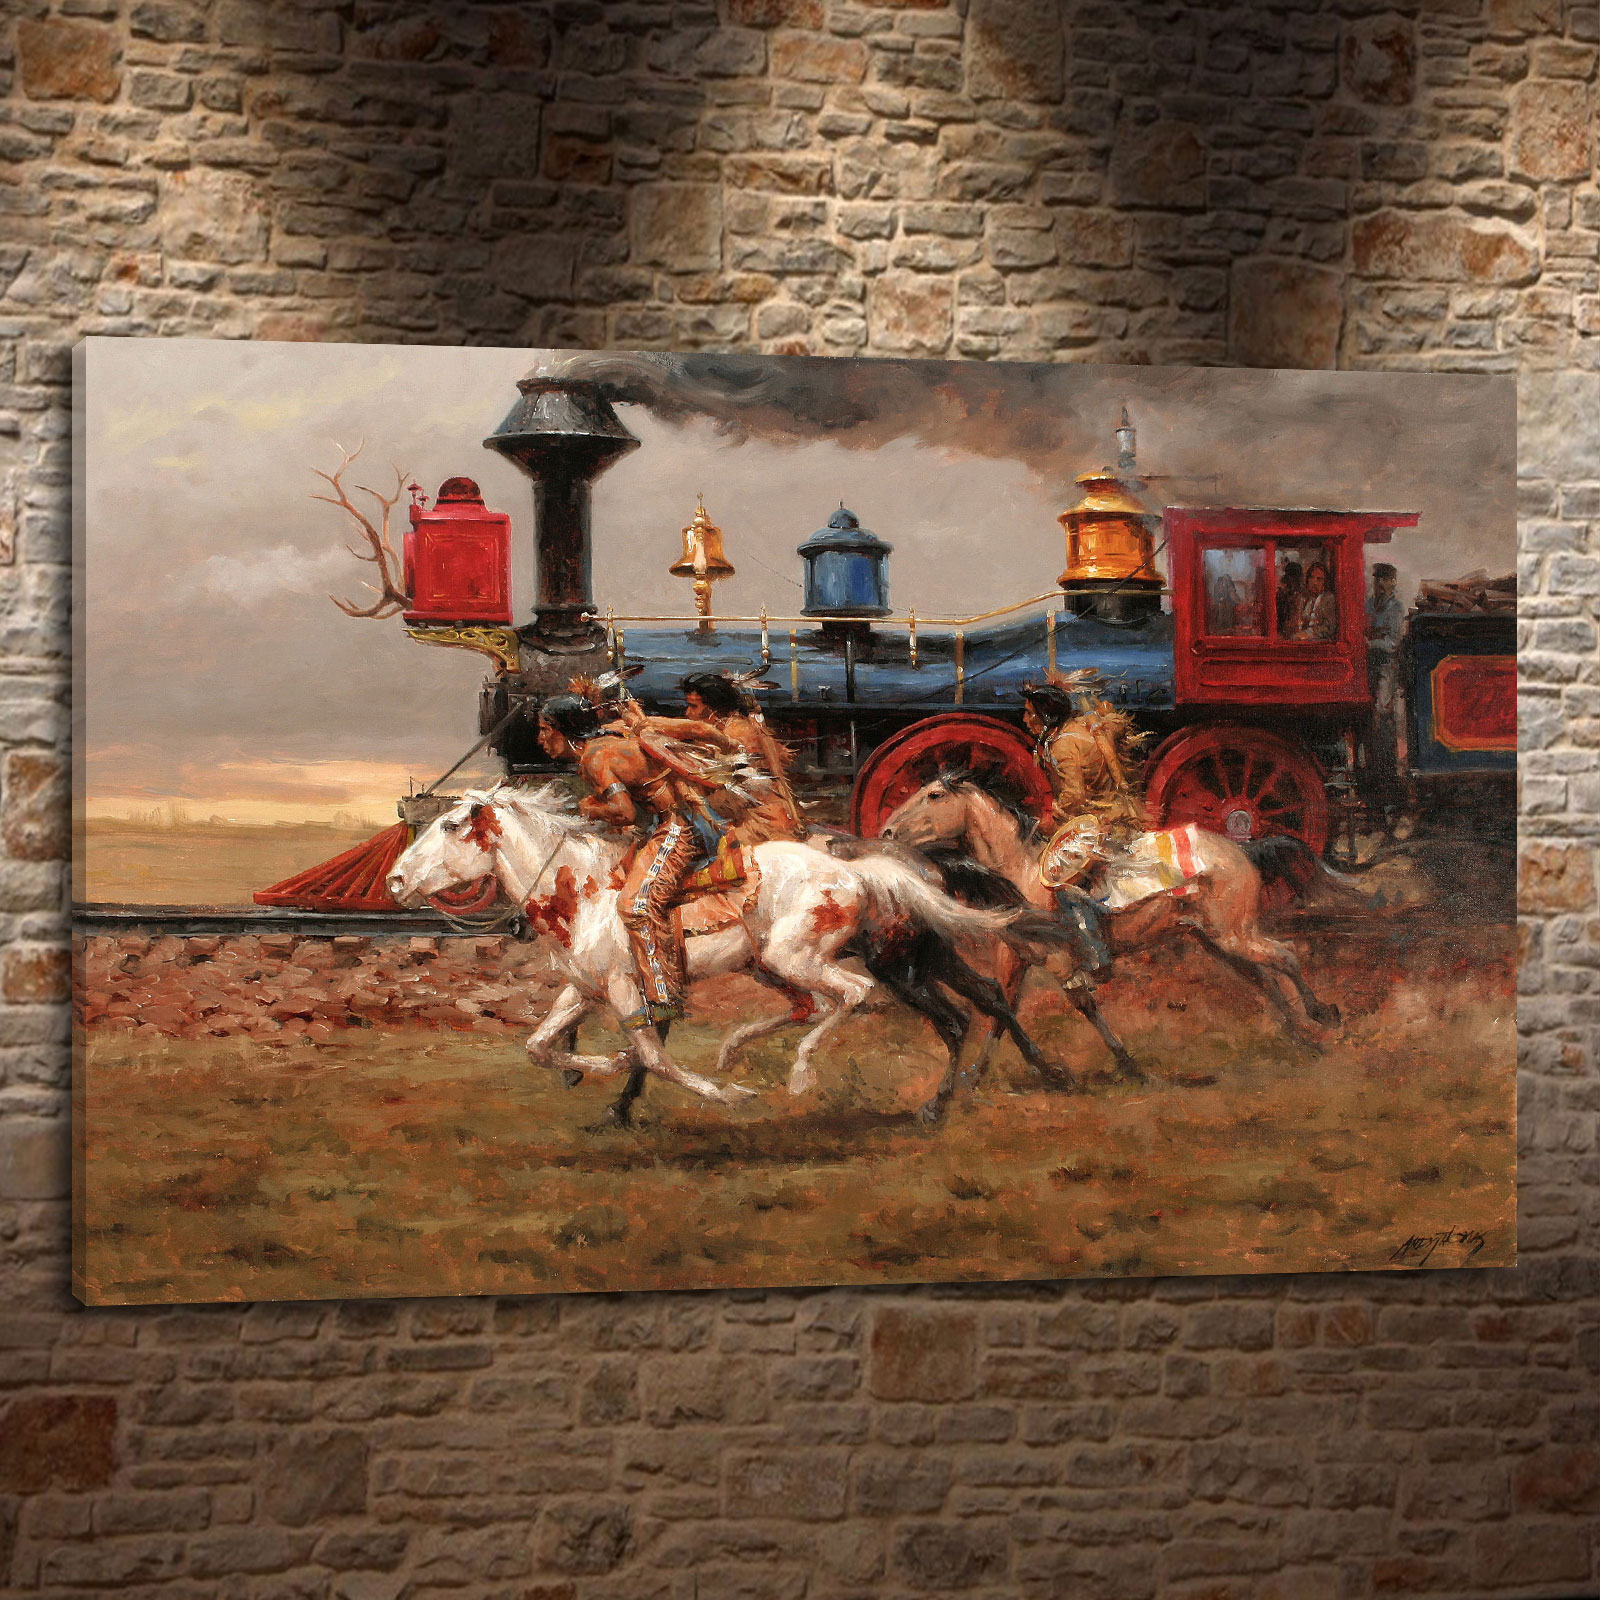 Andy thomas western landscape cowboy style gift canvas painting living room bedroom home decor modern wall art oil painting 053